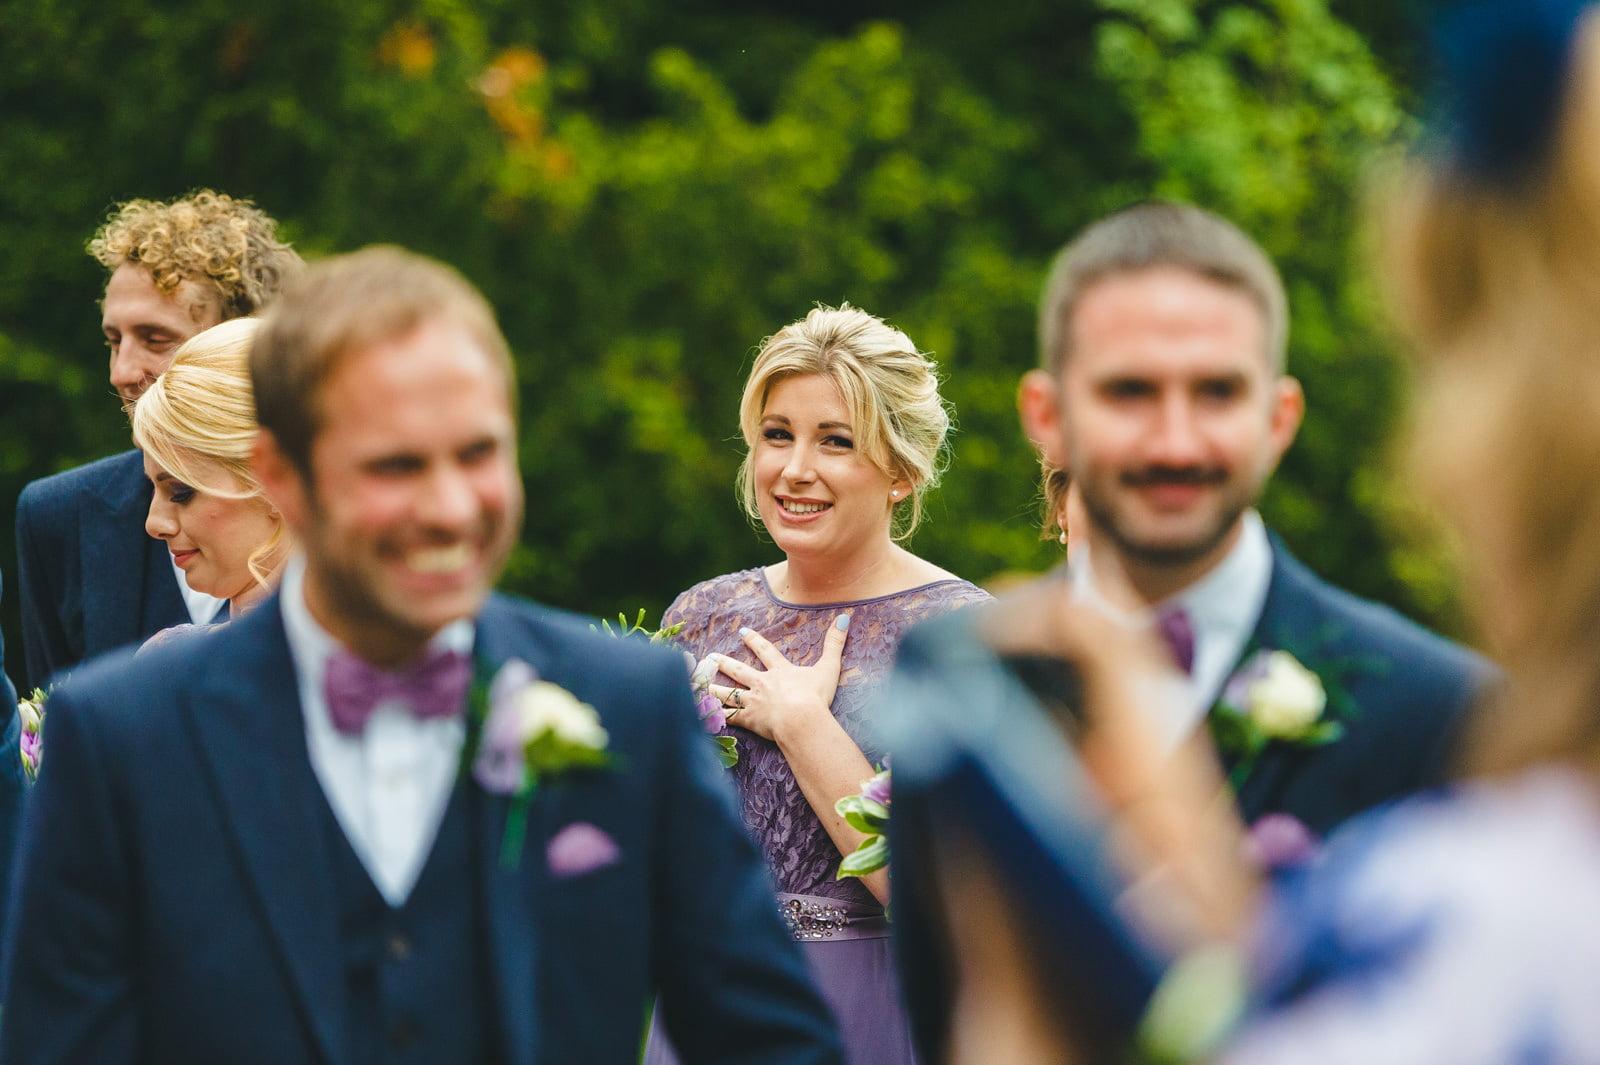 millers of netley wedding 26 - Millers Of Netley wedding, Dorrington, Shrewsbury | Emma + Ben